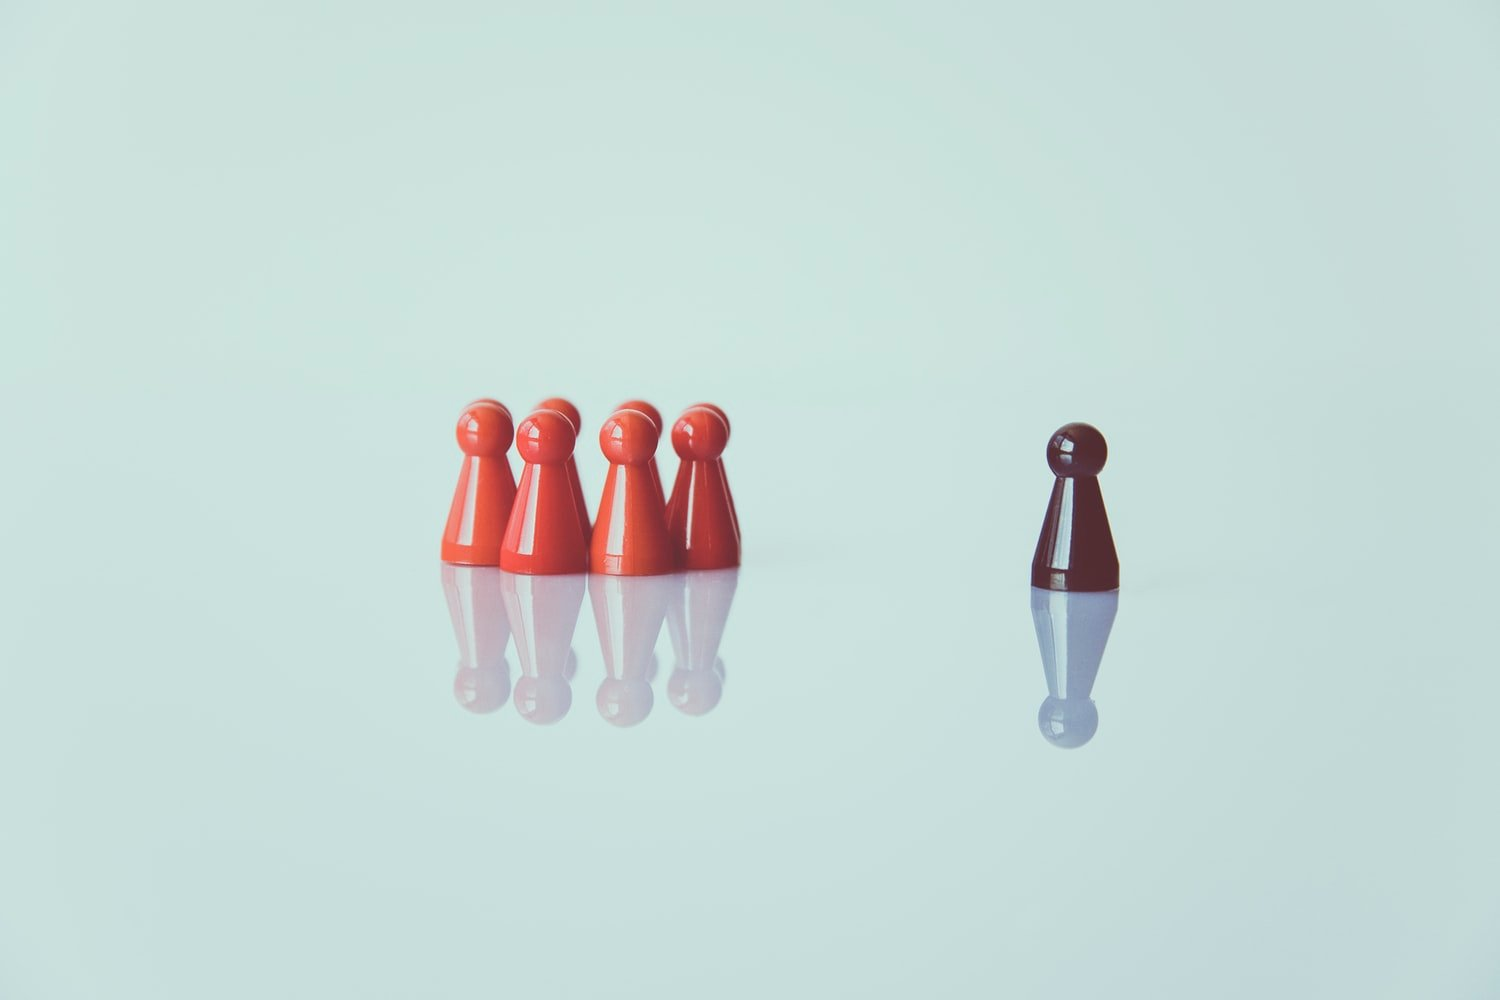 Stereotyping in hiring